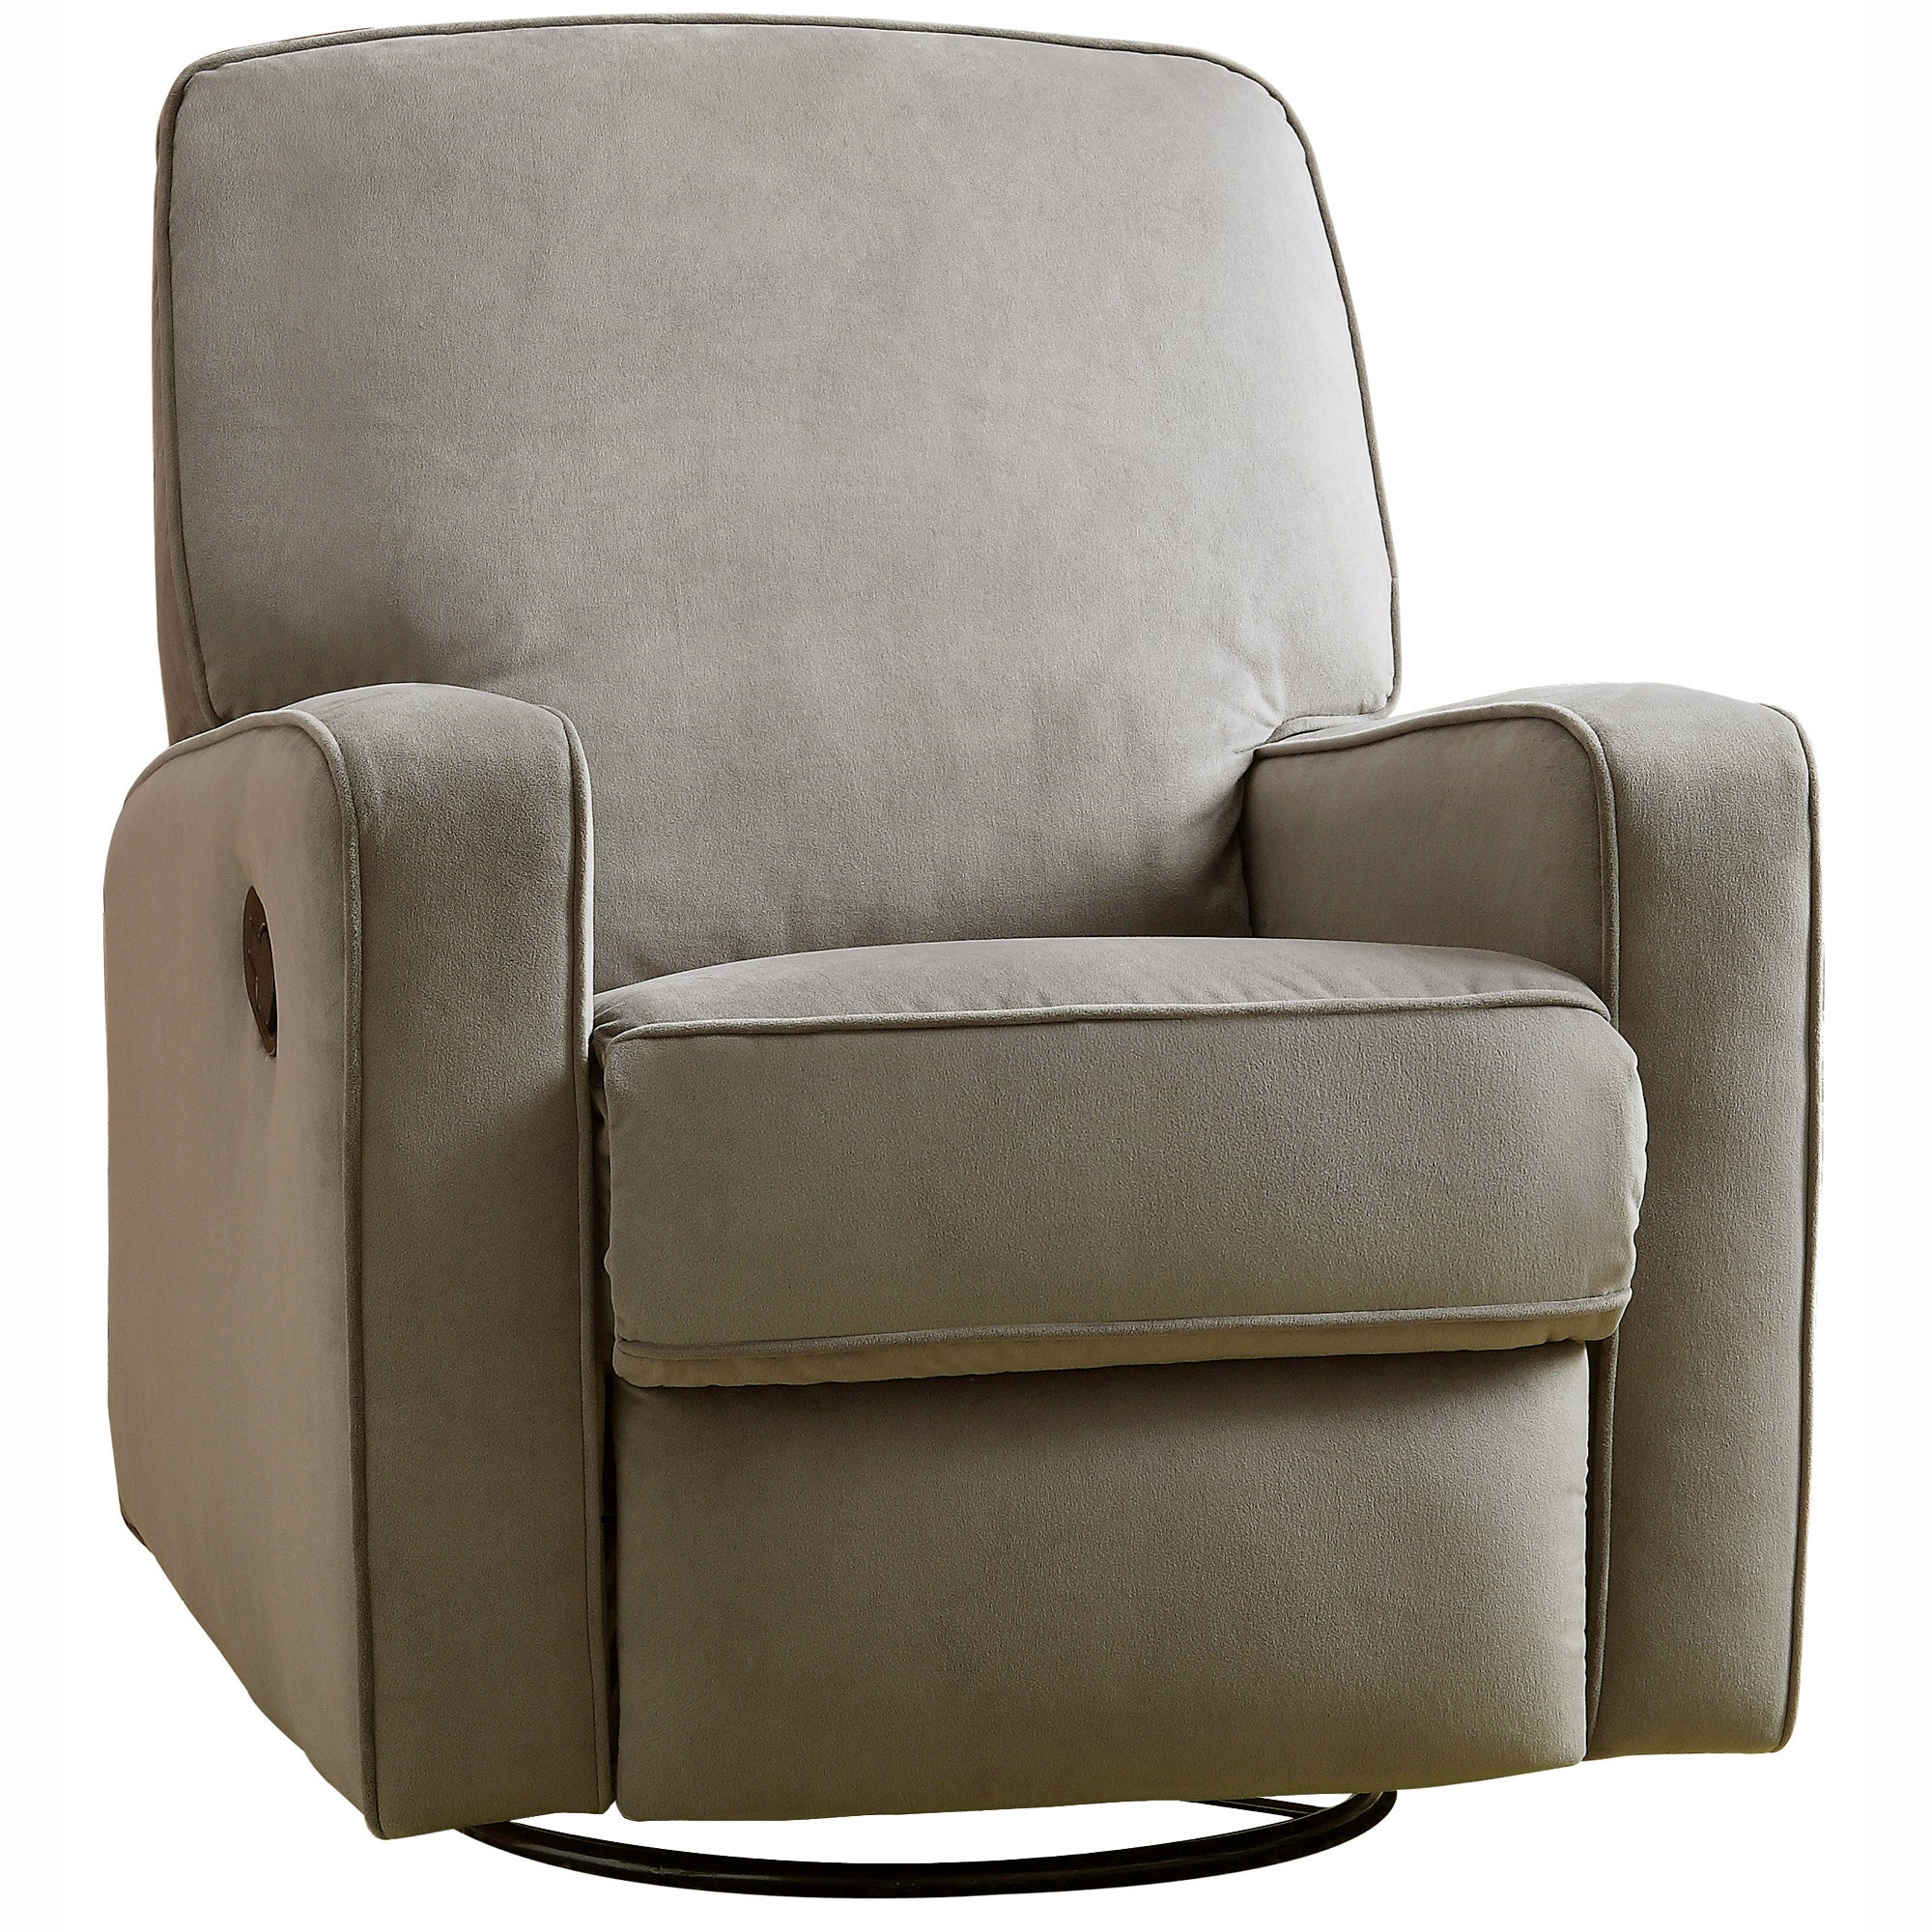 colton gray fabric modern nursery swivel glider recliner chair  freeshipping today  overstockcom  . colton gray fabric modern nursery swivel glider recliner chair